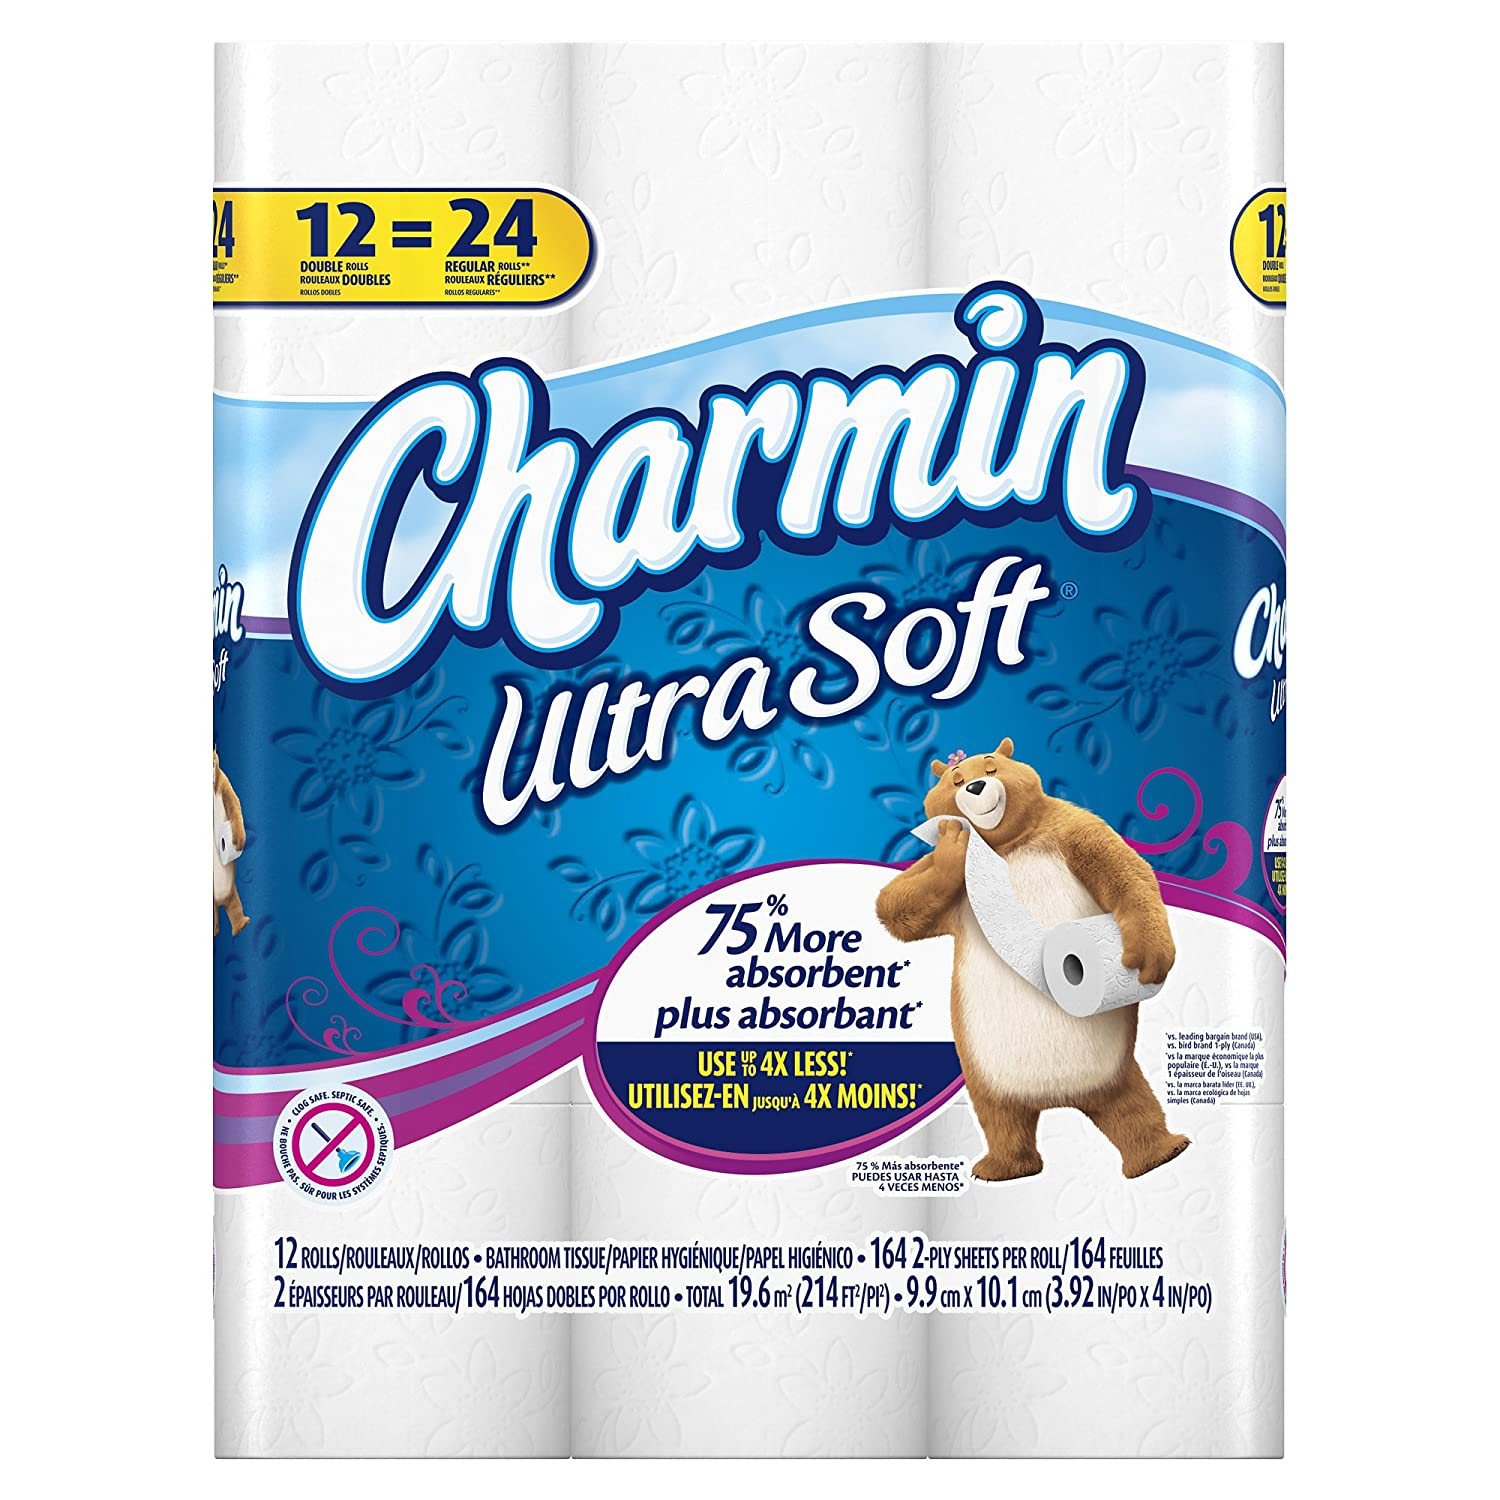 Amazon.com: Charmin Ultra Soft Double Roll Toilet Paper, 12 Count ...